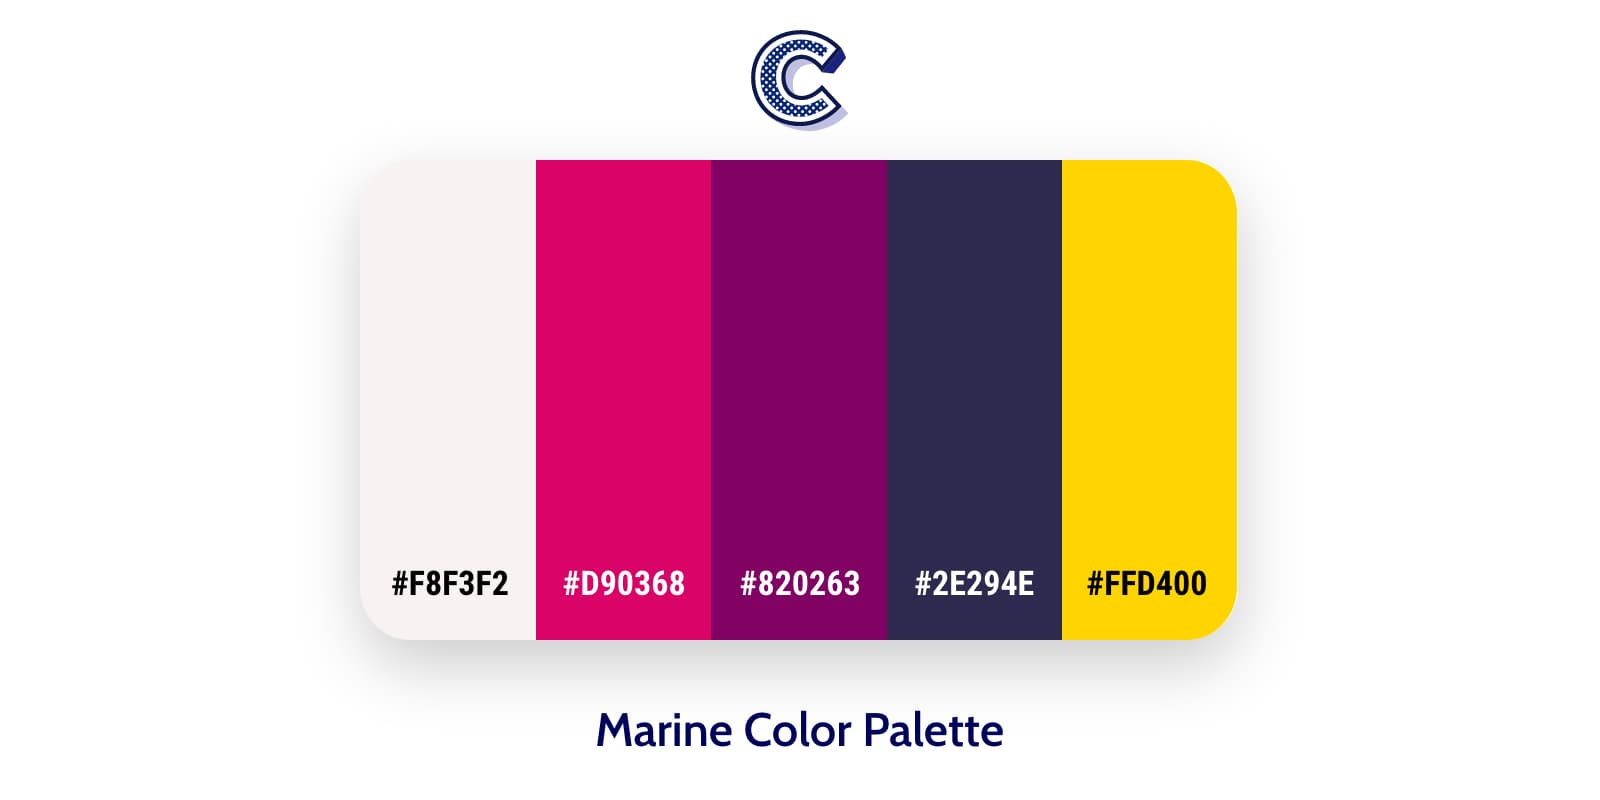 the featured image of marine color palette